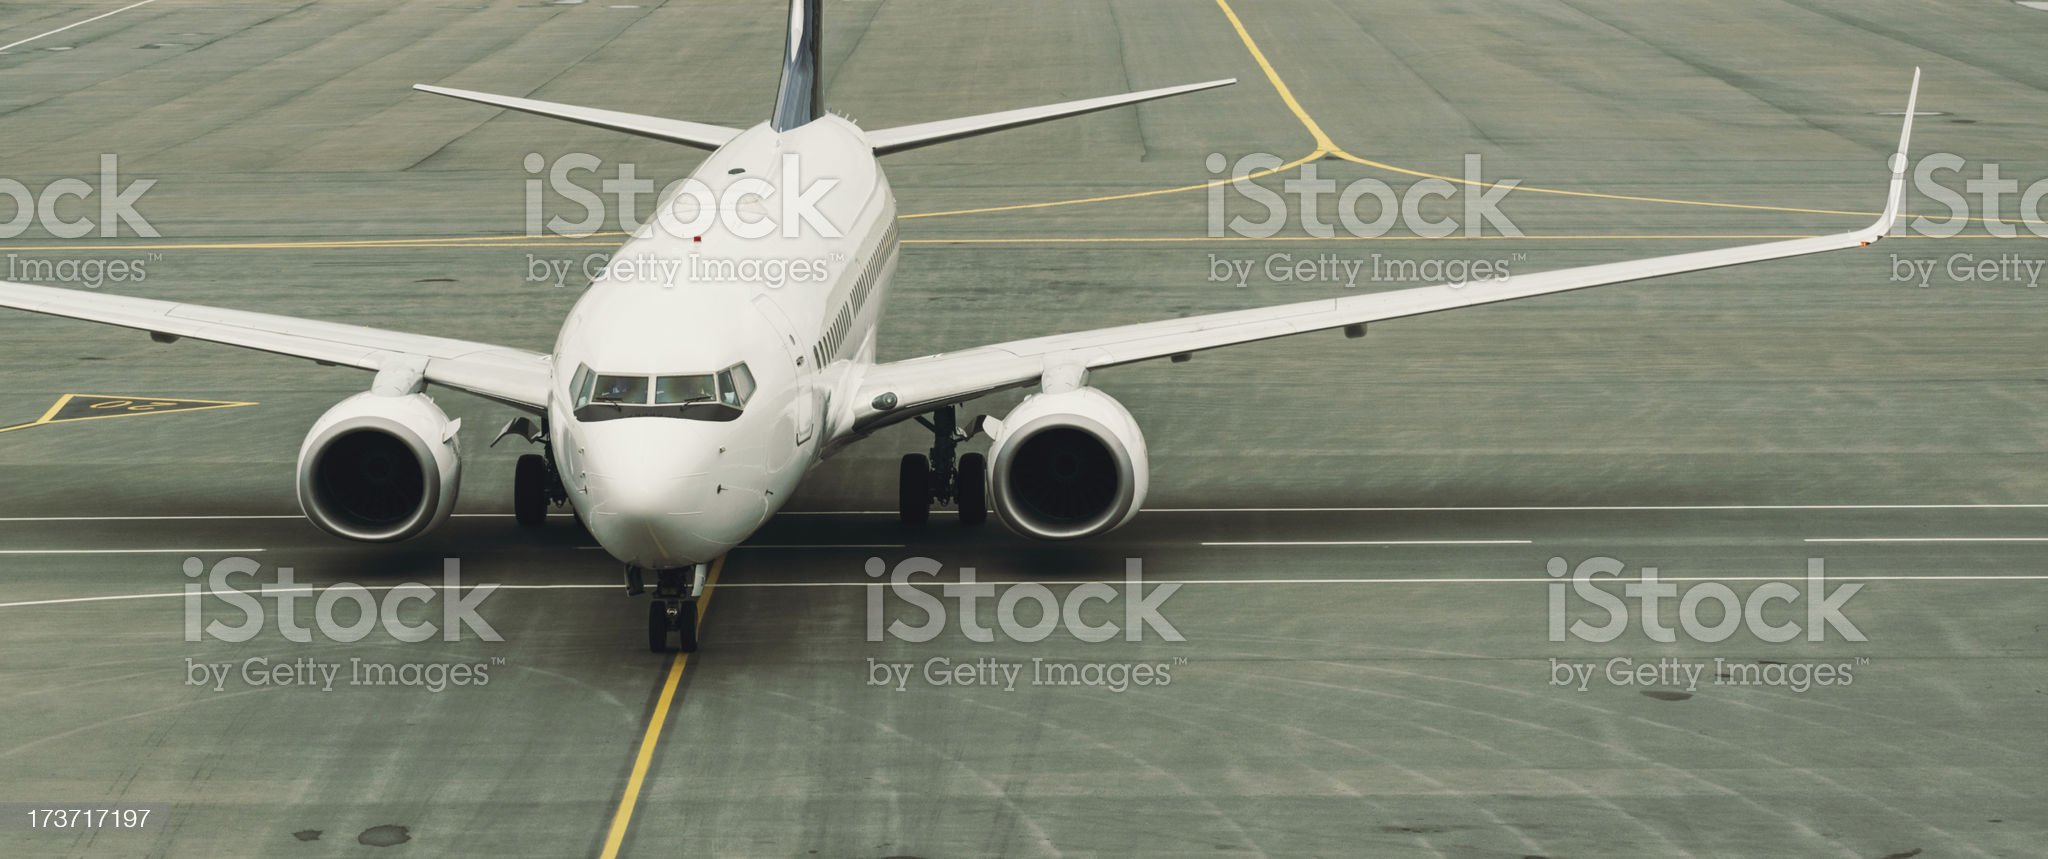 Passenger Jet on Taxiway royalty-free stock photo